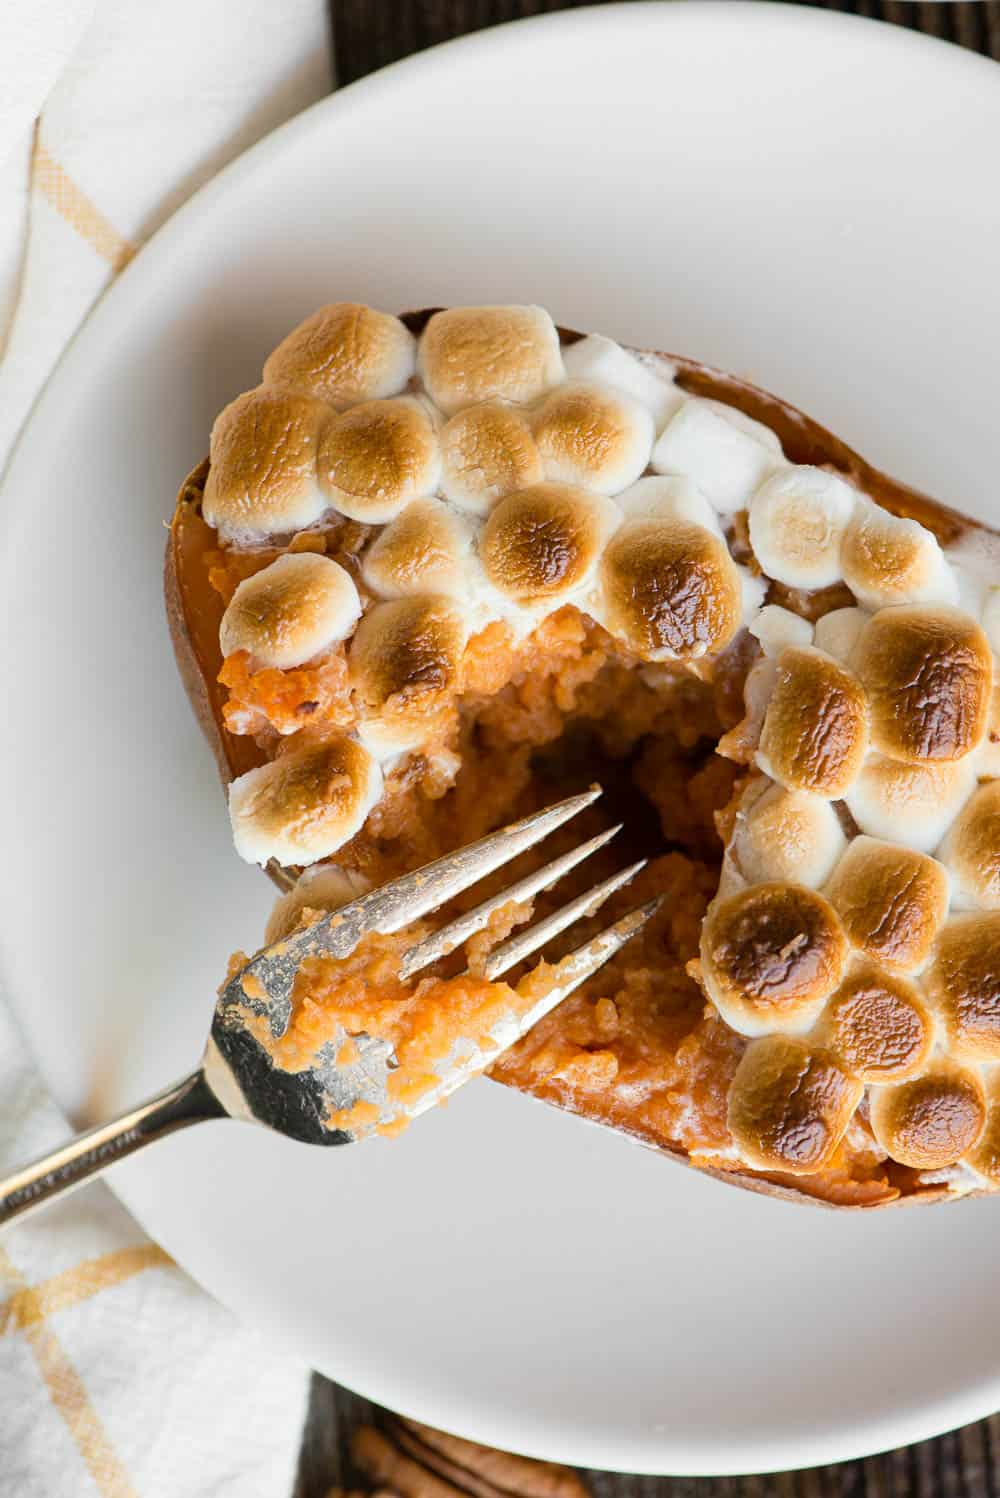 top of a baked sweet potato covered in marshmallows